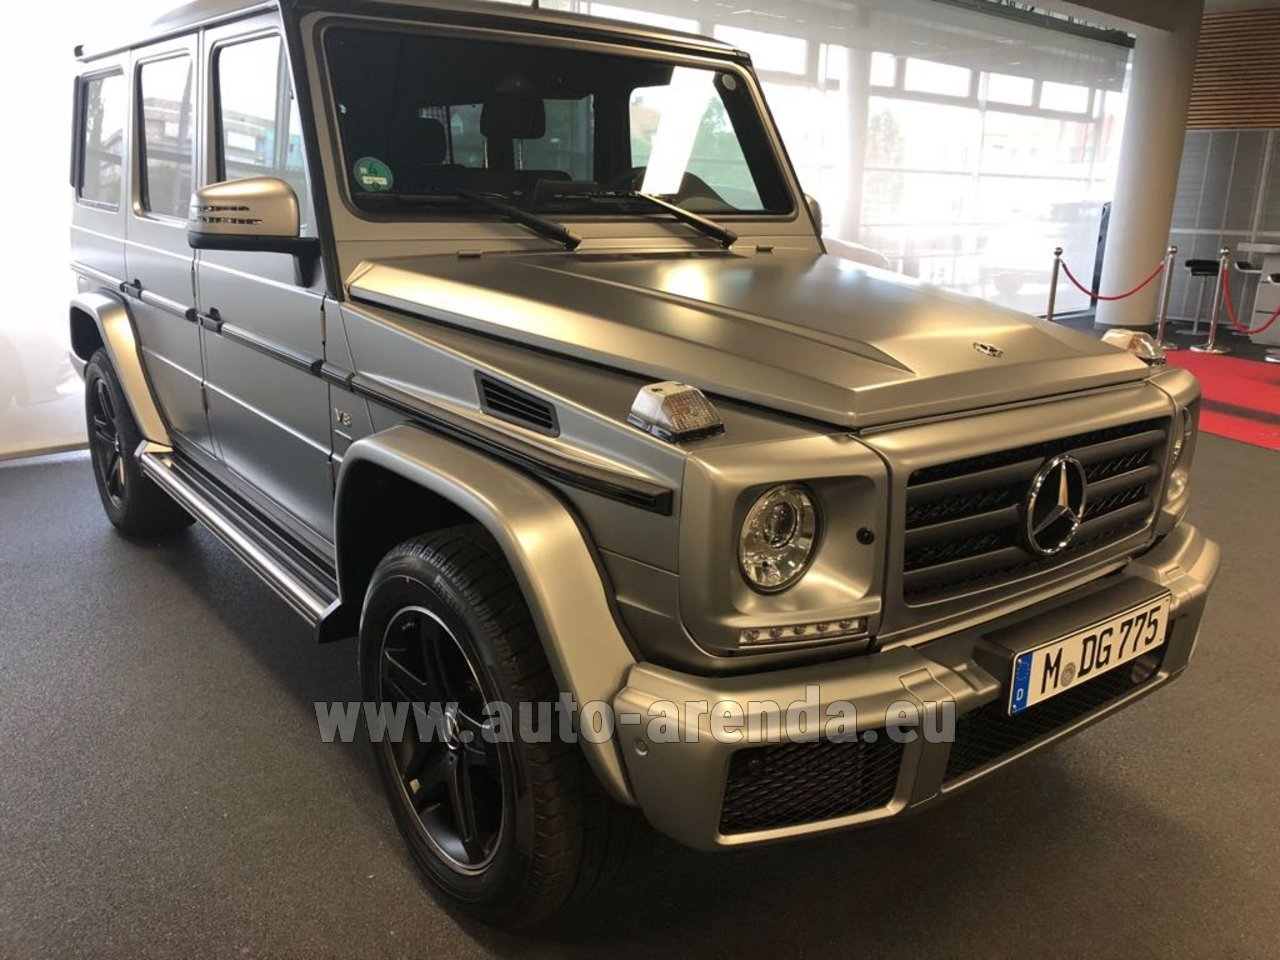 Rent The Mercedes Benz G Class G 500 Limited Edition Car In France